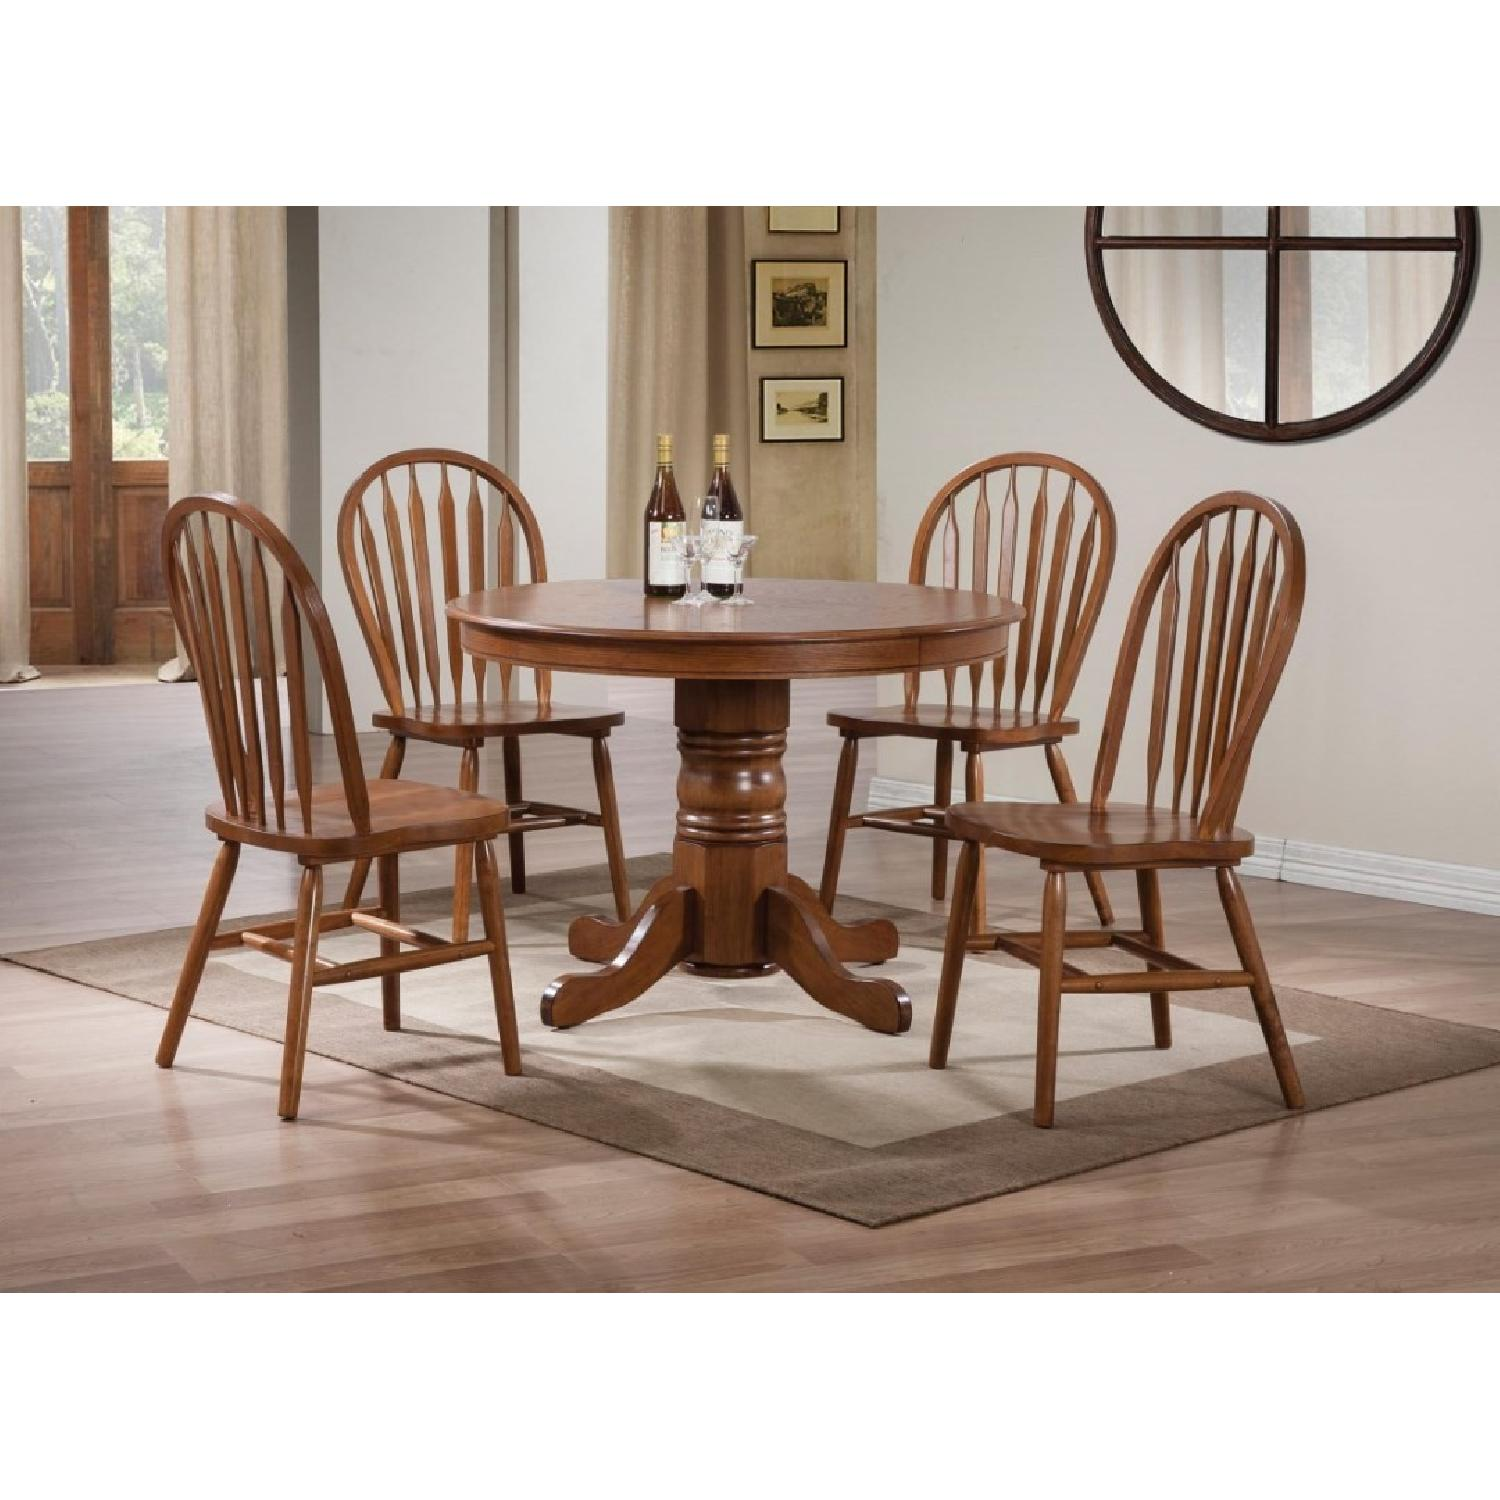 Country Style Round Pedestal Dining Table in Warm Oak Finish - image-1